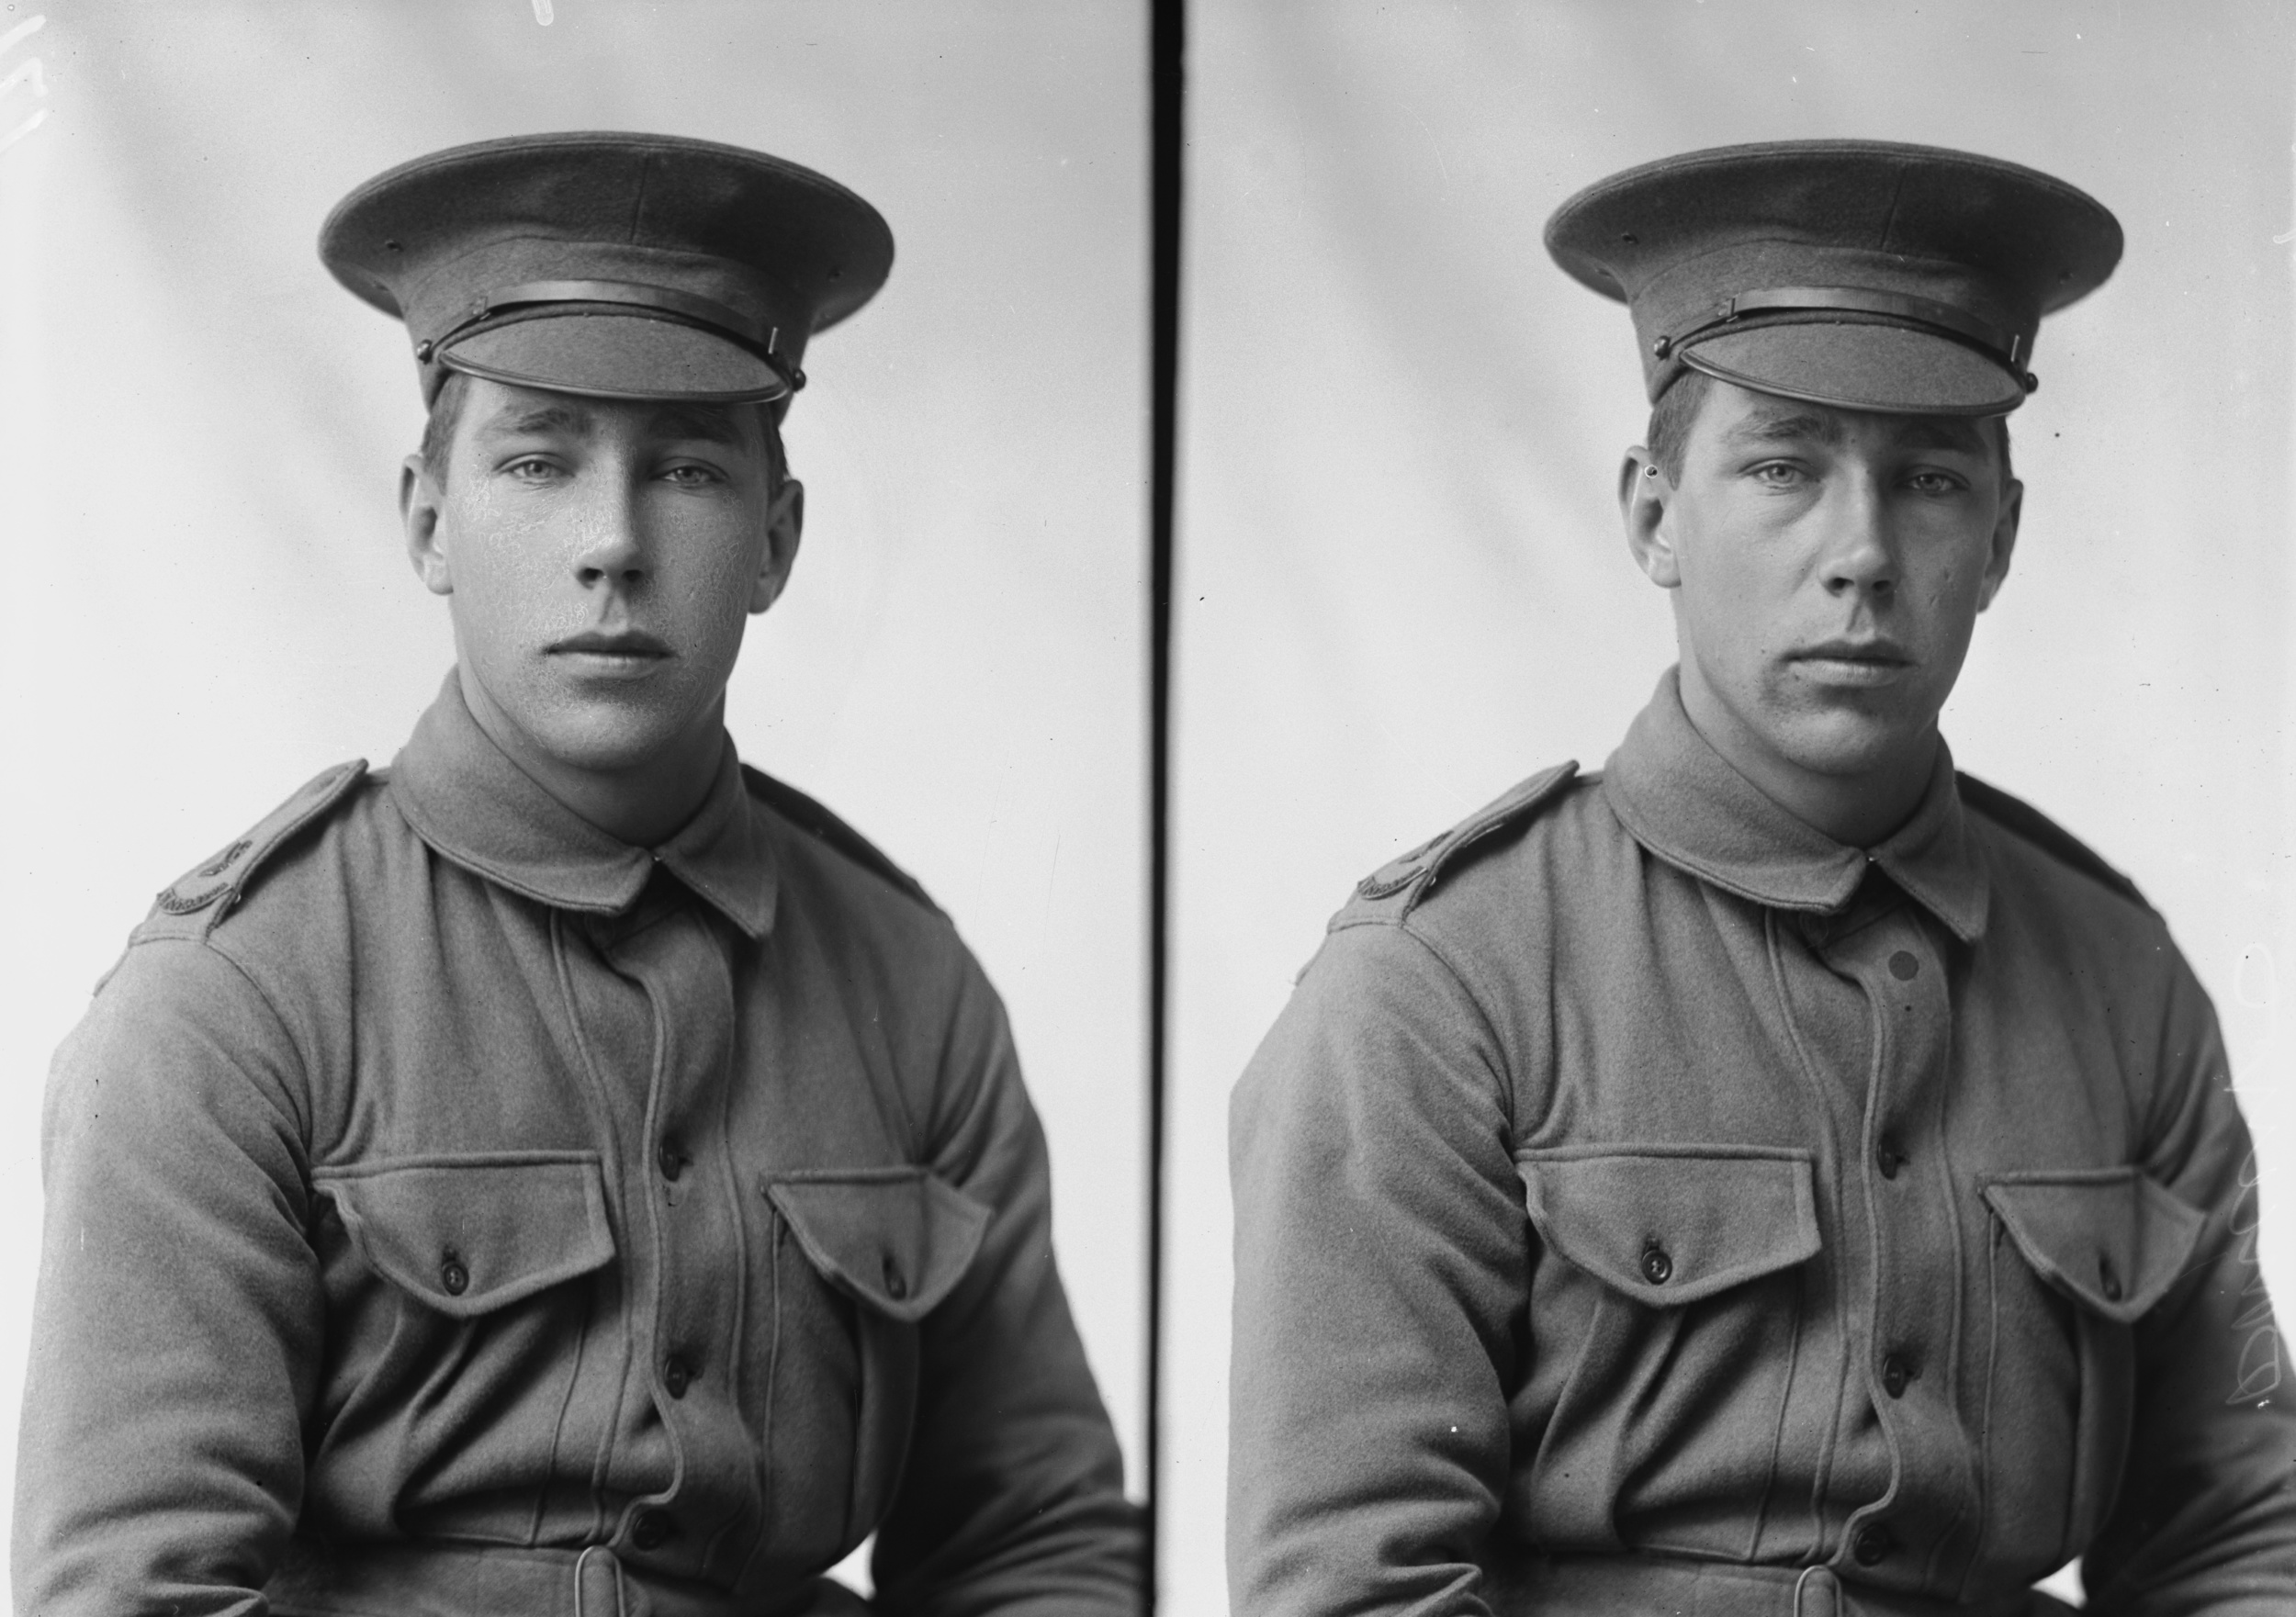 Photographed at the Dease Studio, 117 Barrack Street Perth WA Image courtesy of the State Library of Western Australia: 108691PD